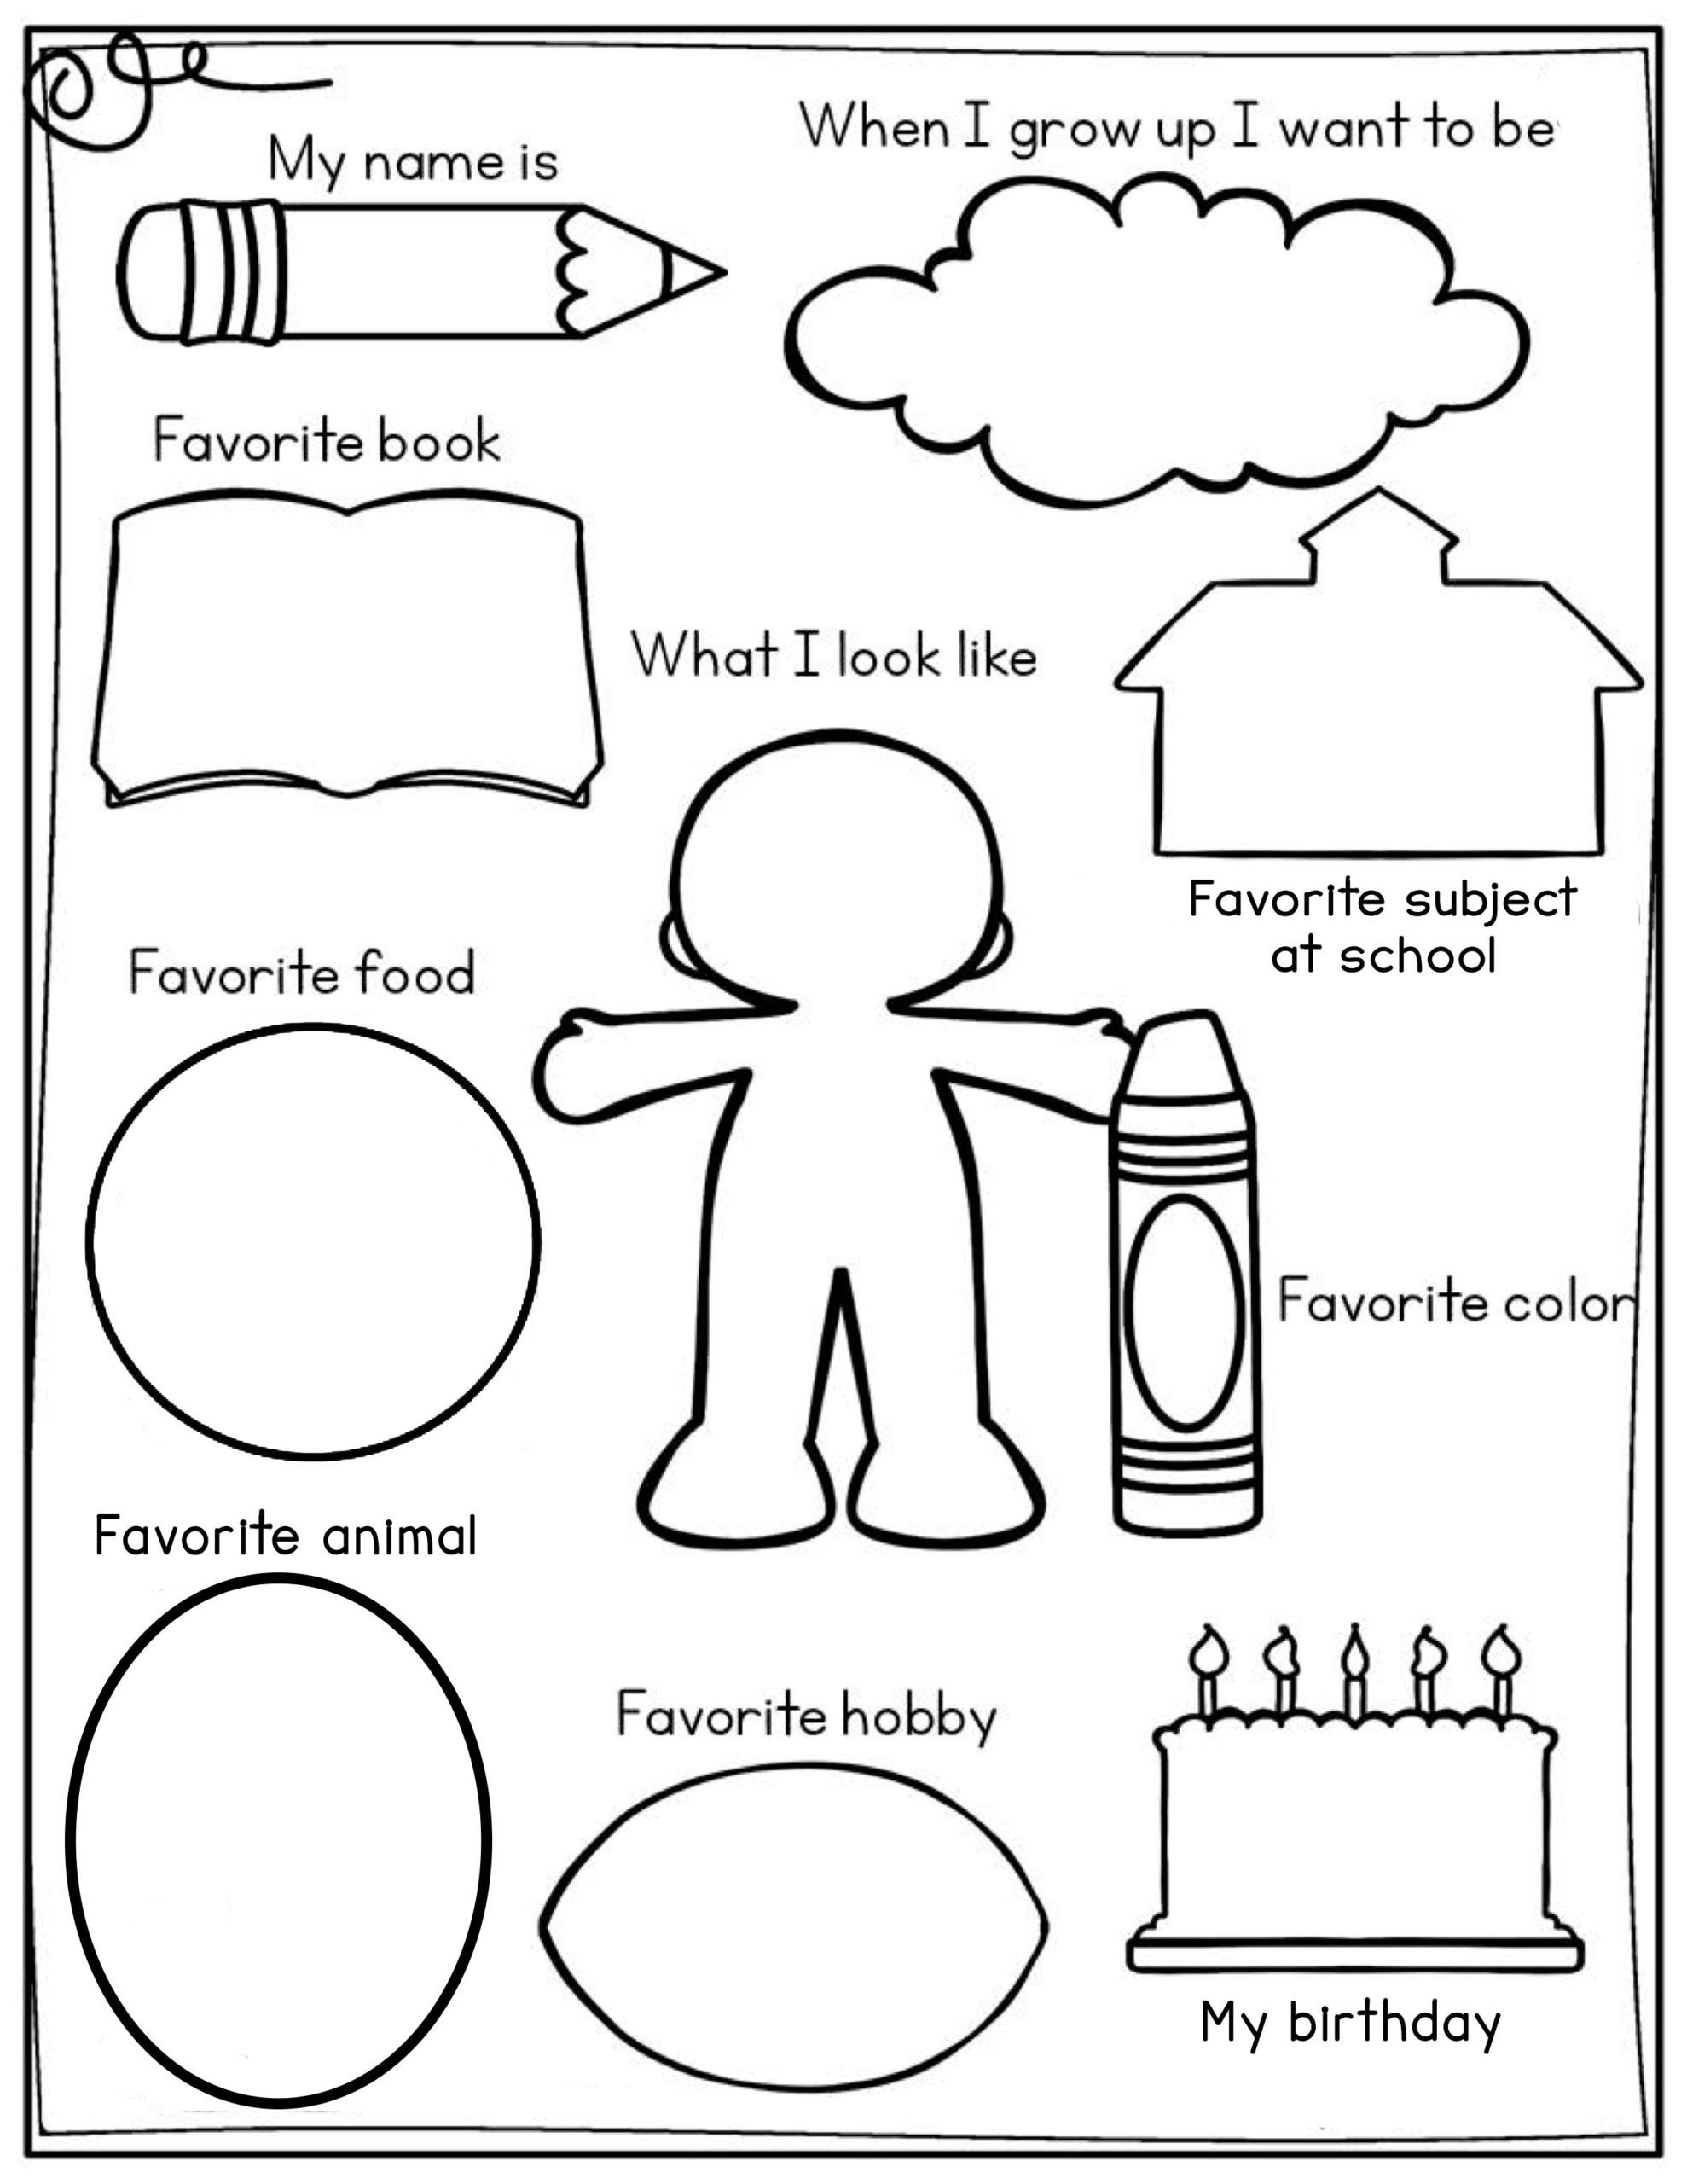 about worksheet portrait orientation sunday school crafts talking feelings worksheets simple division with pictures 7th grade equations dividing decimals by whole numbers 5th math scaled